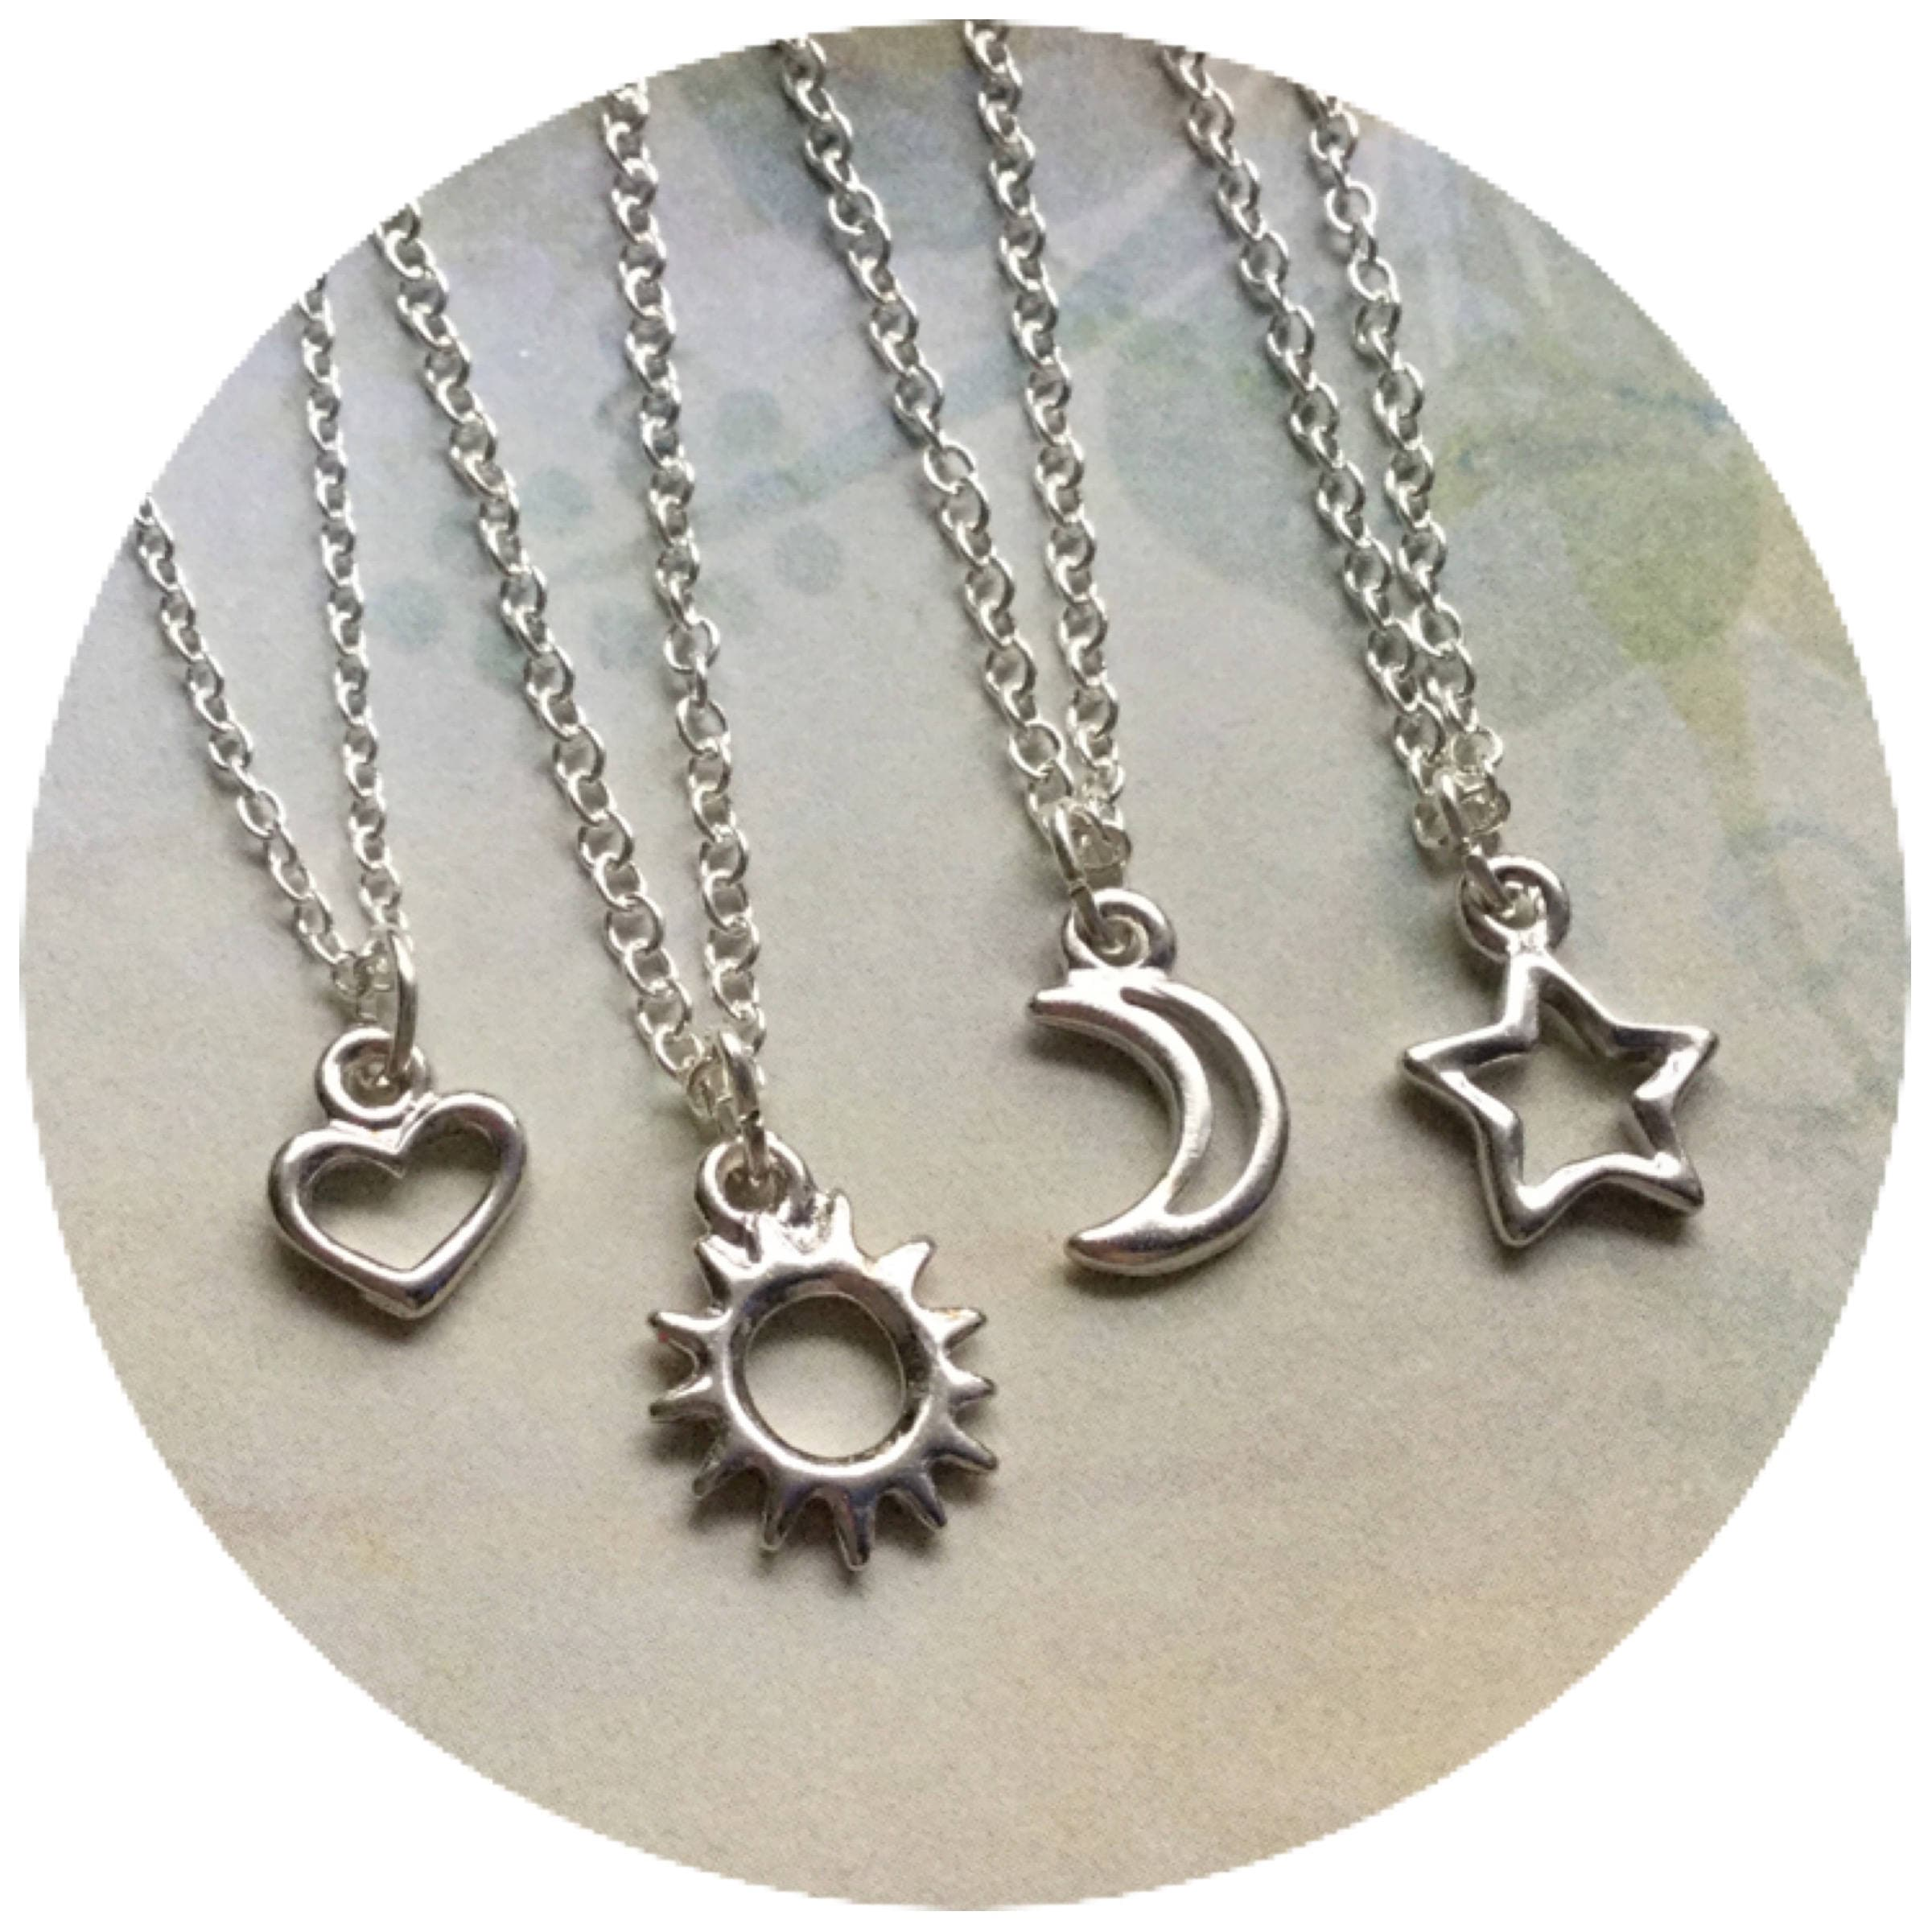 pp is and celtic the plain darkness of style sterling never necklace design pendants moon duality yin this sun ending for products depicted silver any perfect lightness pendant yang set details half piece in aeravida